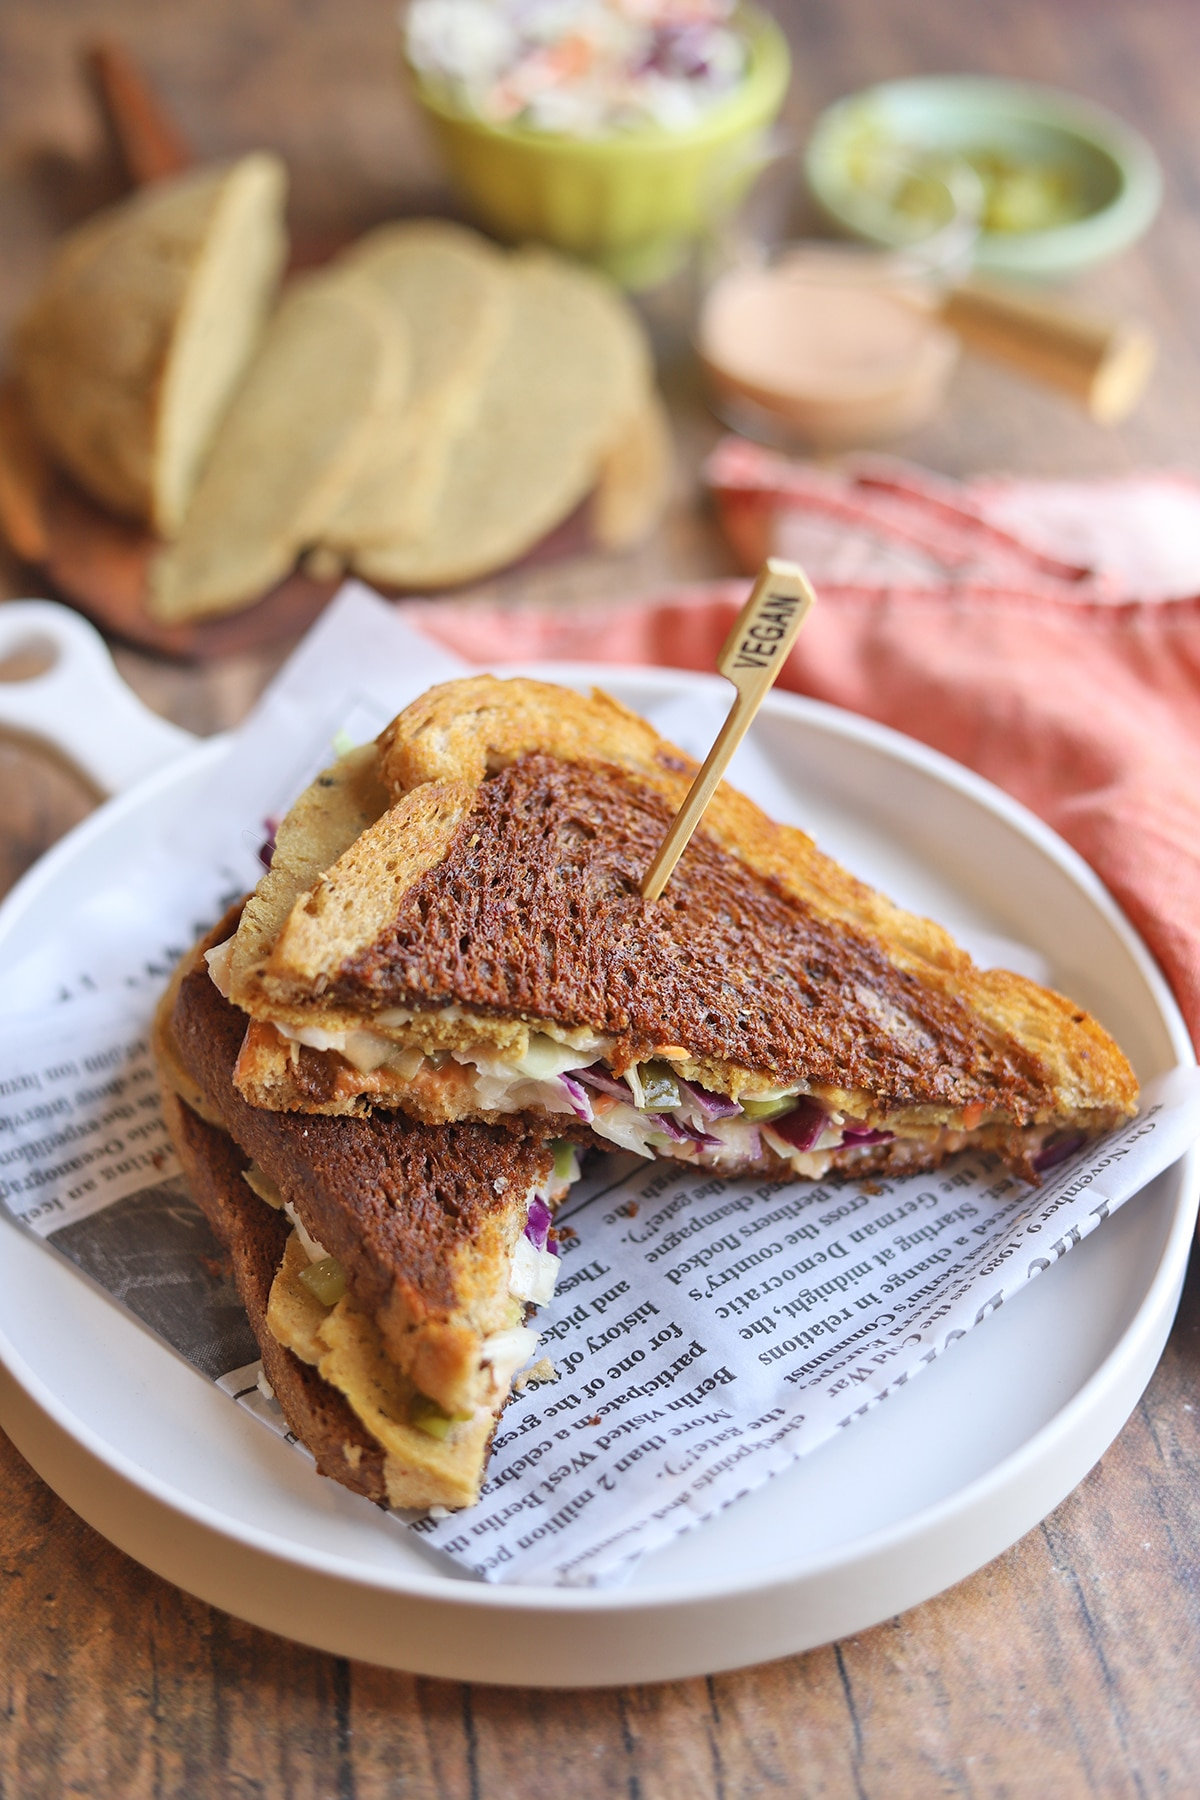 Toasted sandwich on plate with seitan and coleslaw.